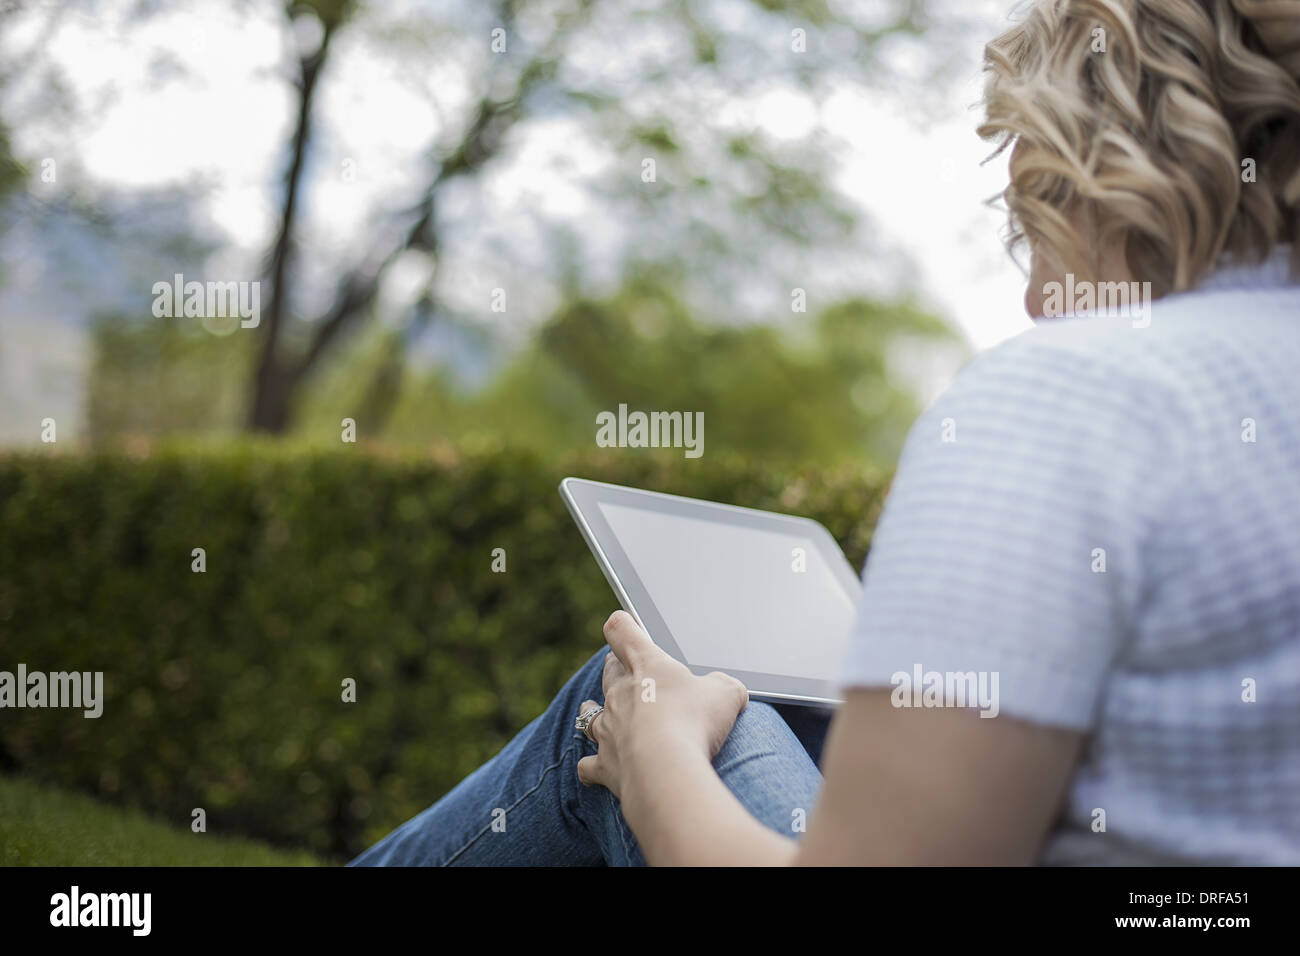 Utah USA young woman reading using handheld tablet - Stock Image